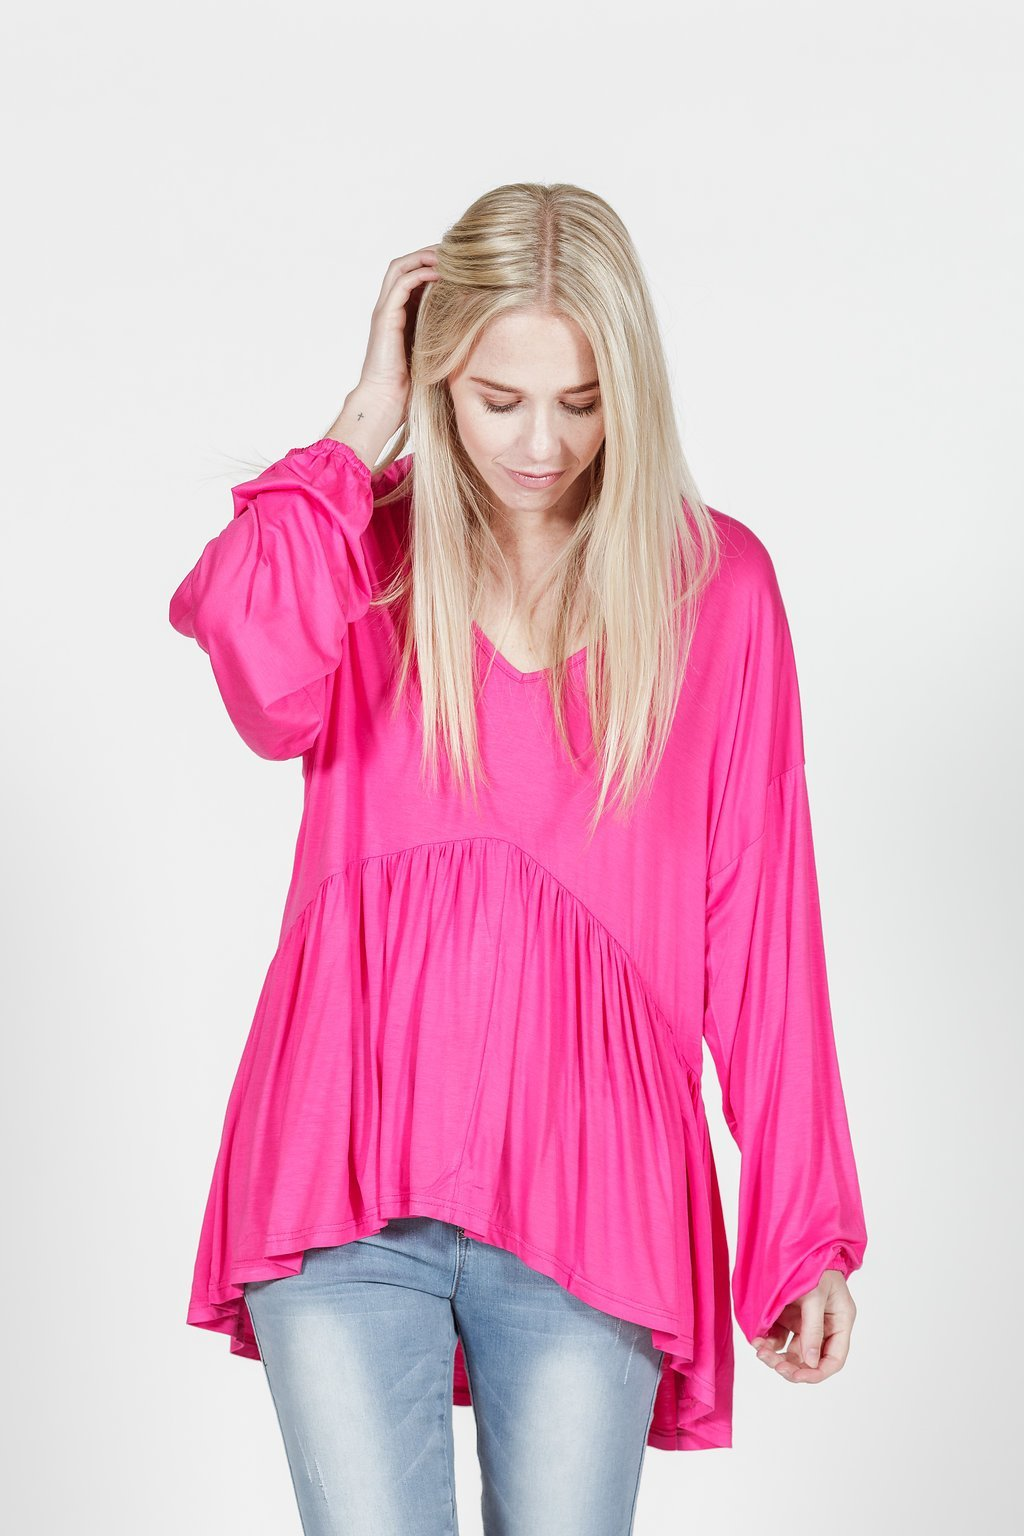 *SALE* LUCY TOP - Bamboo - Raspberry